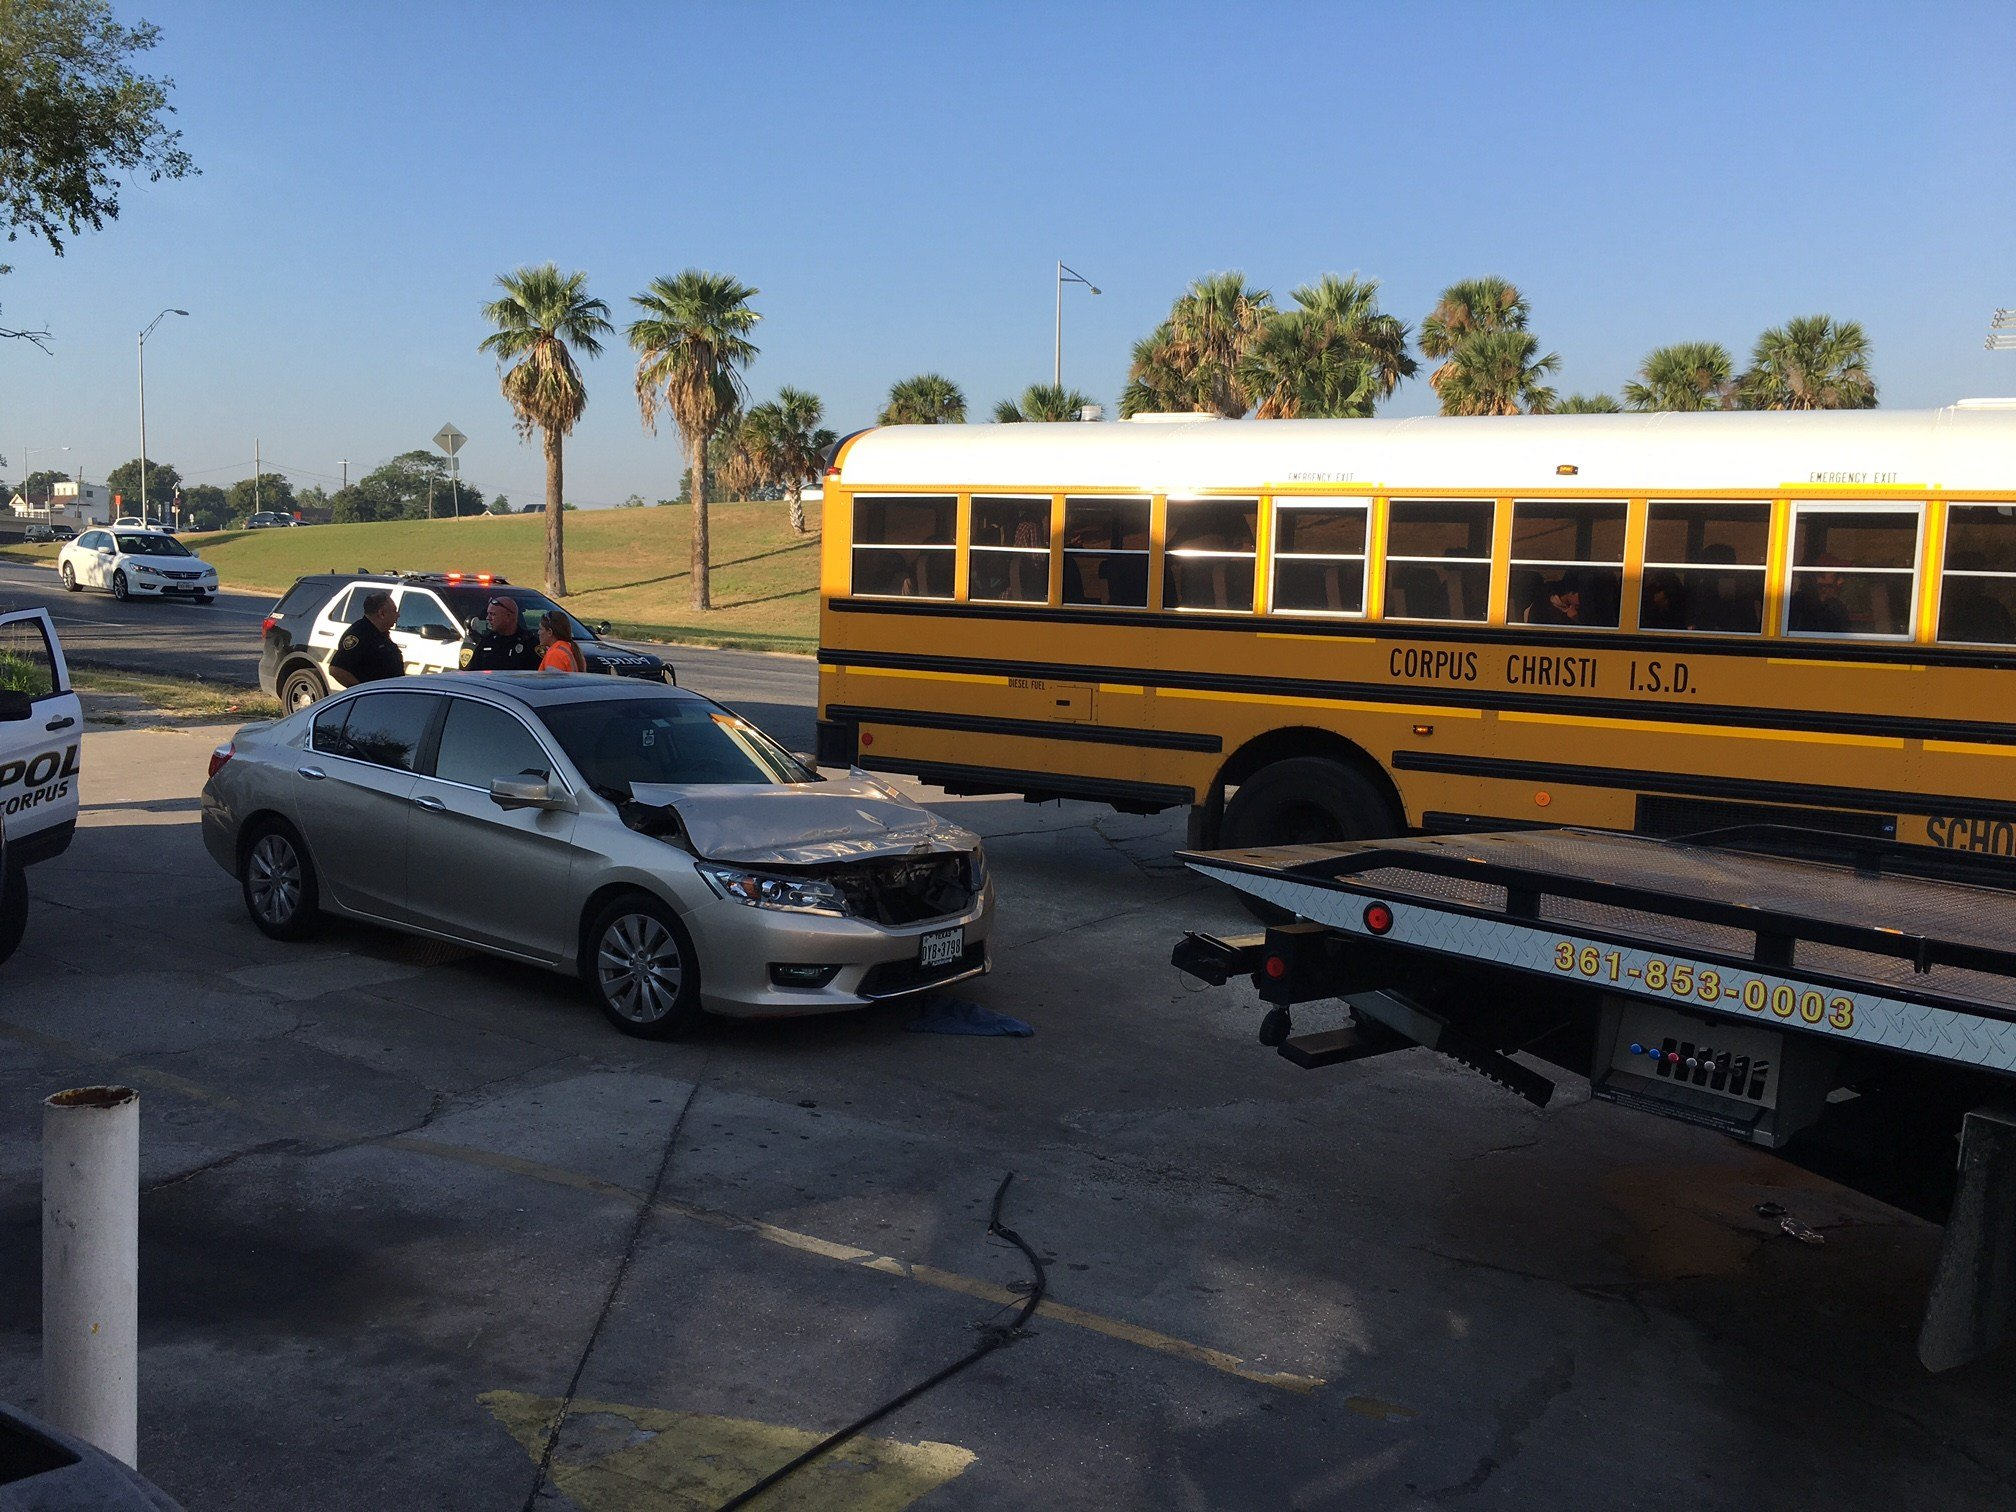 Driver cited in crash with school bus - KZTV10.com | Continuous News  Coverage | Corpus Christi